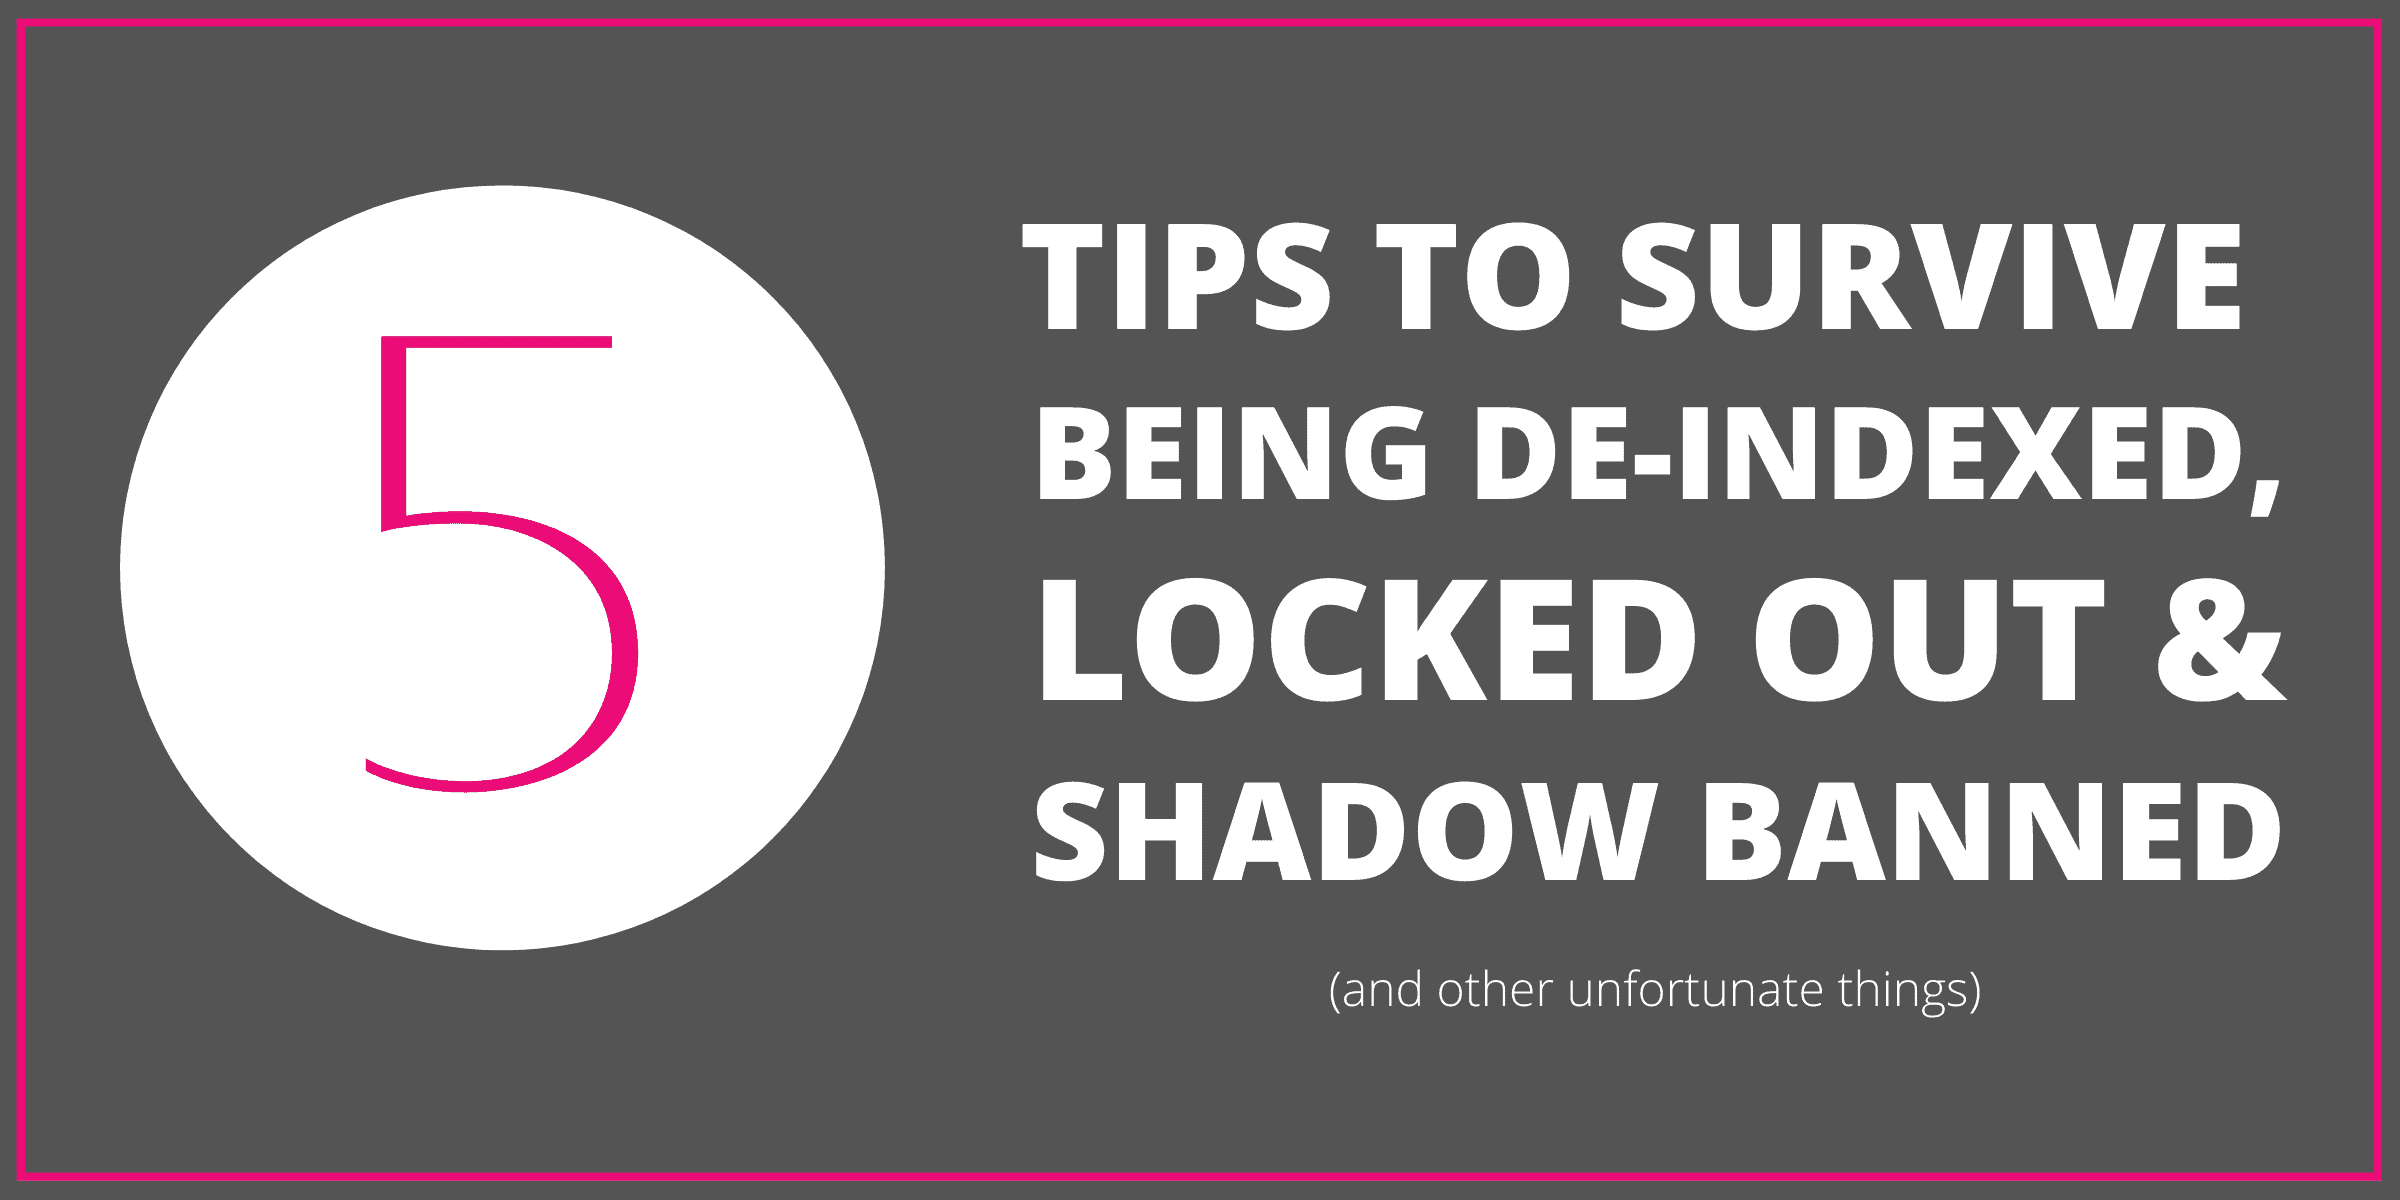 5 Blogging Tips to Survive Being De-Indexed, Locked Out & Shadow Banned